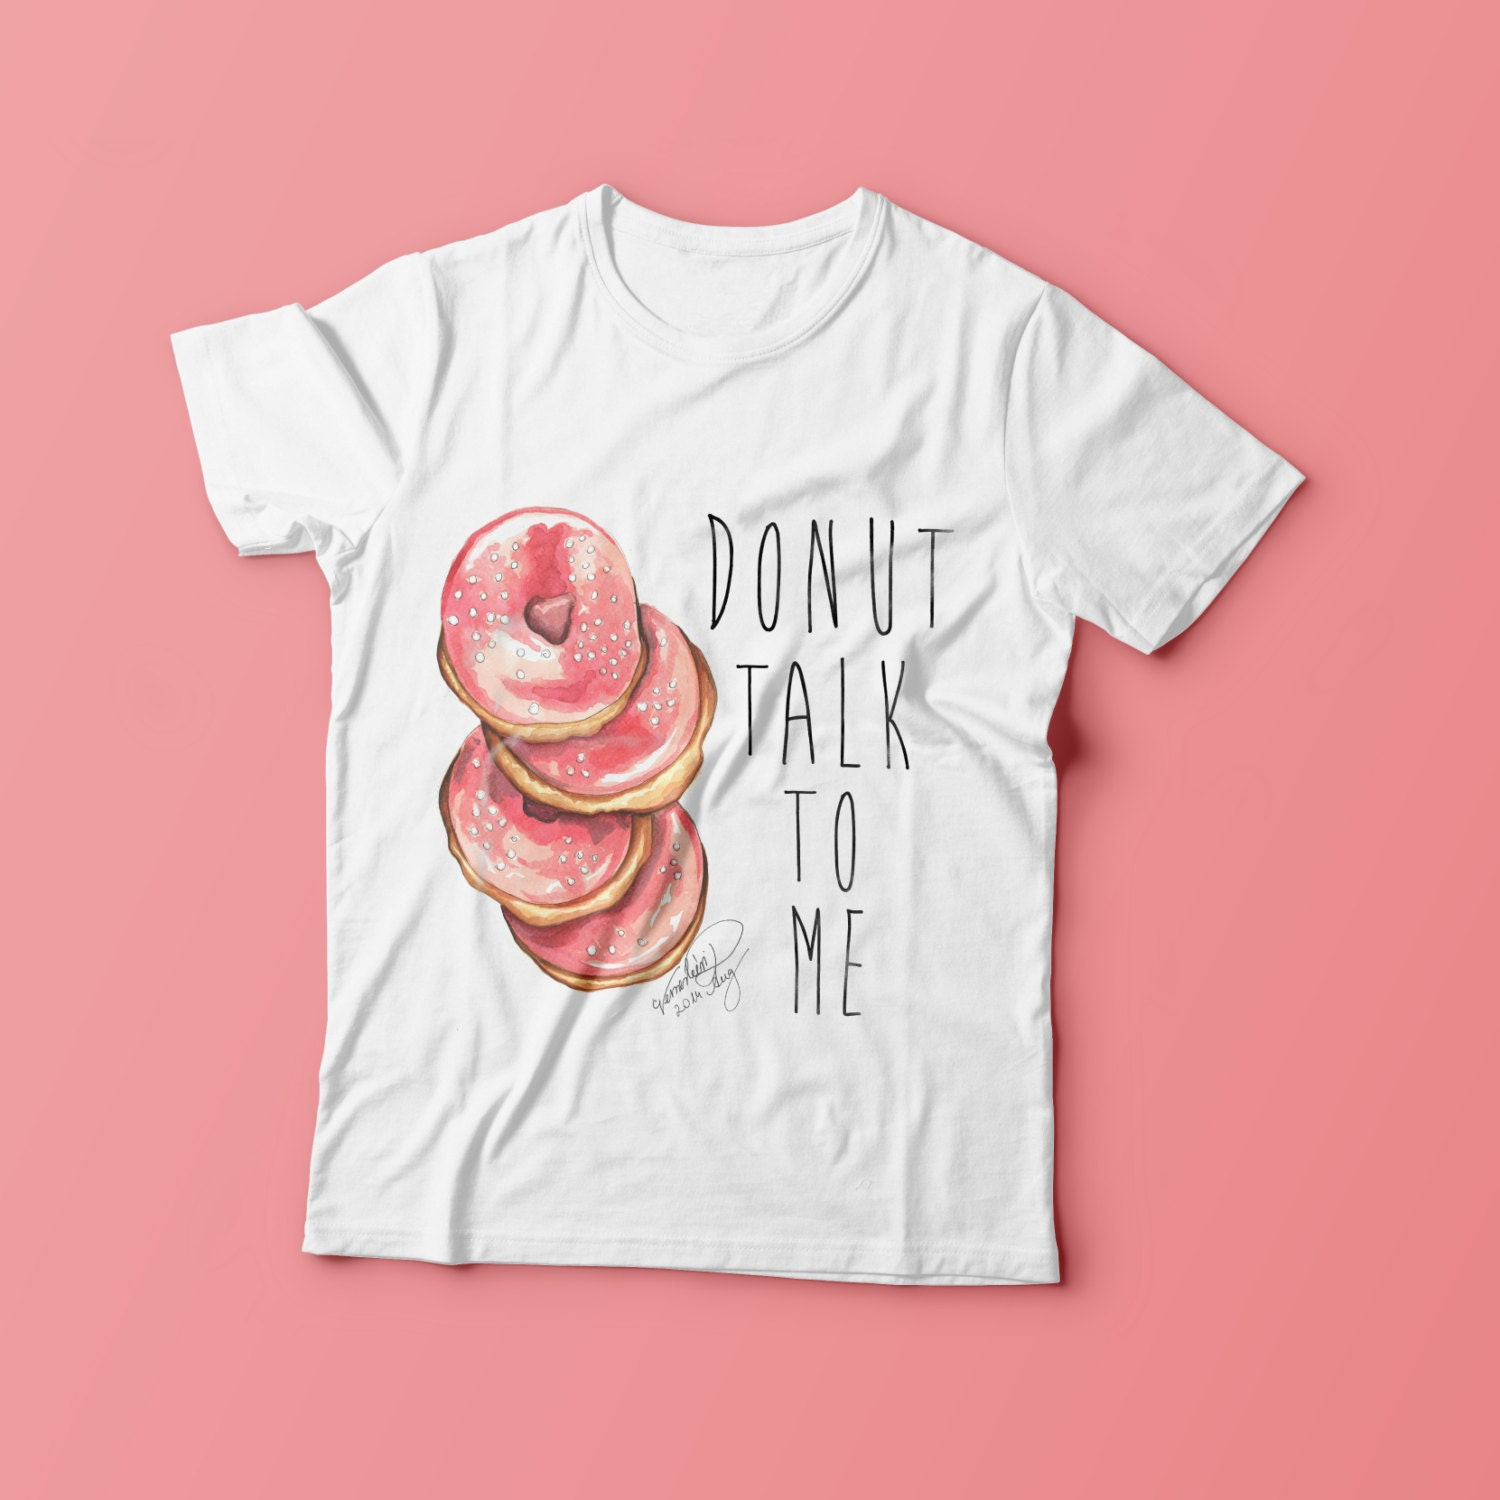 Find great deals on eBay for donut shirt. Shop with confidence.